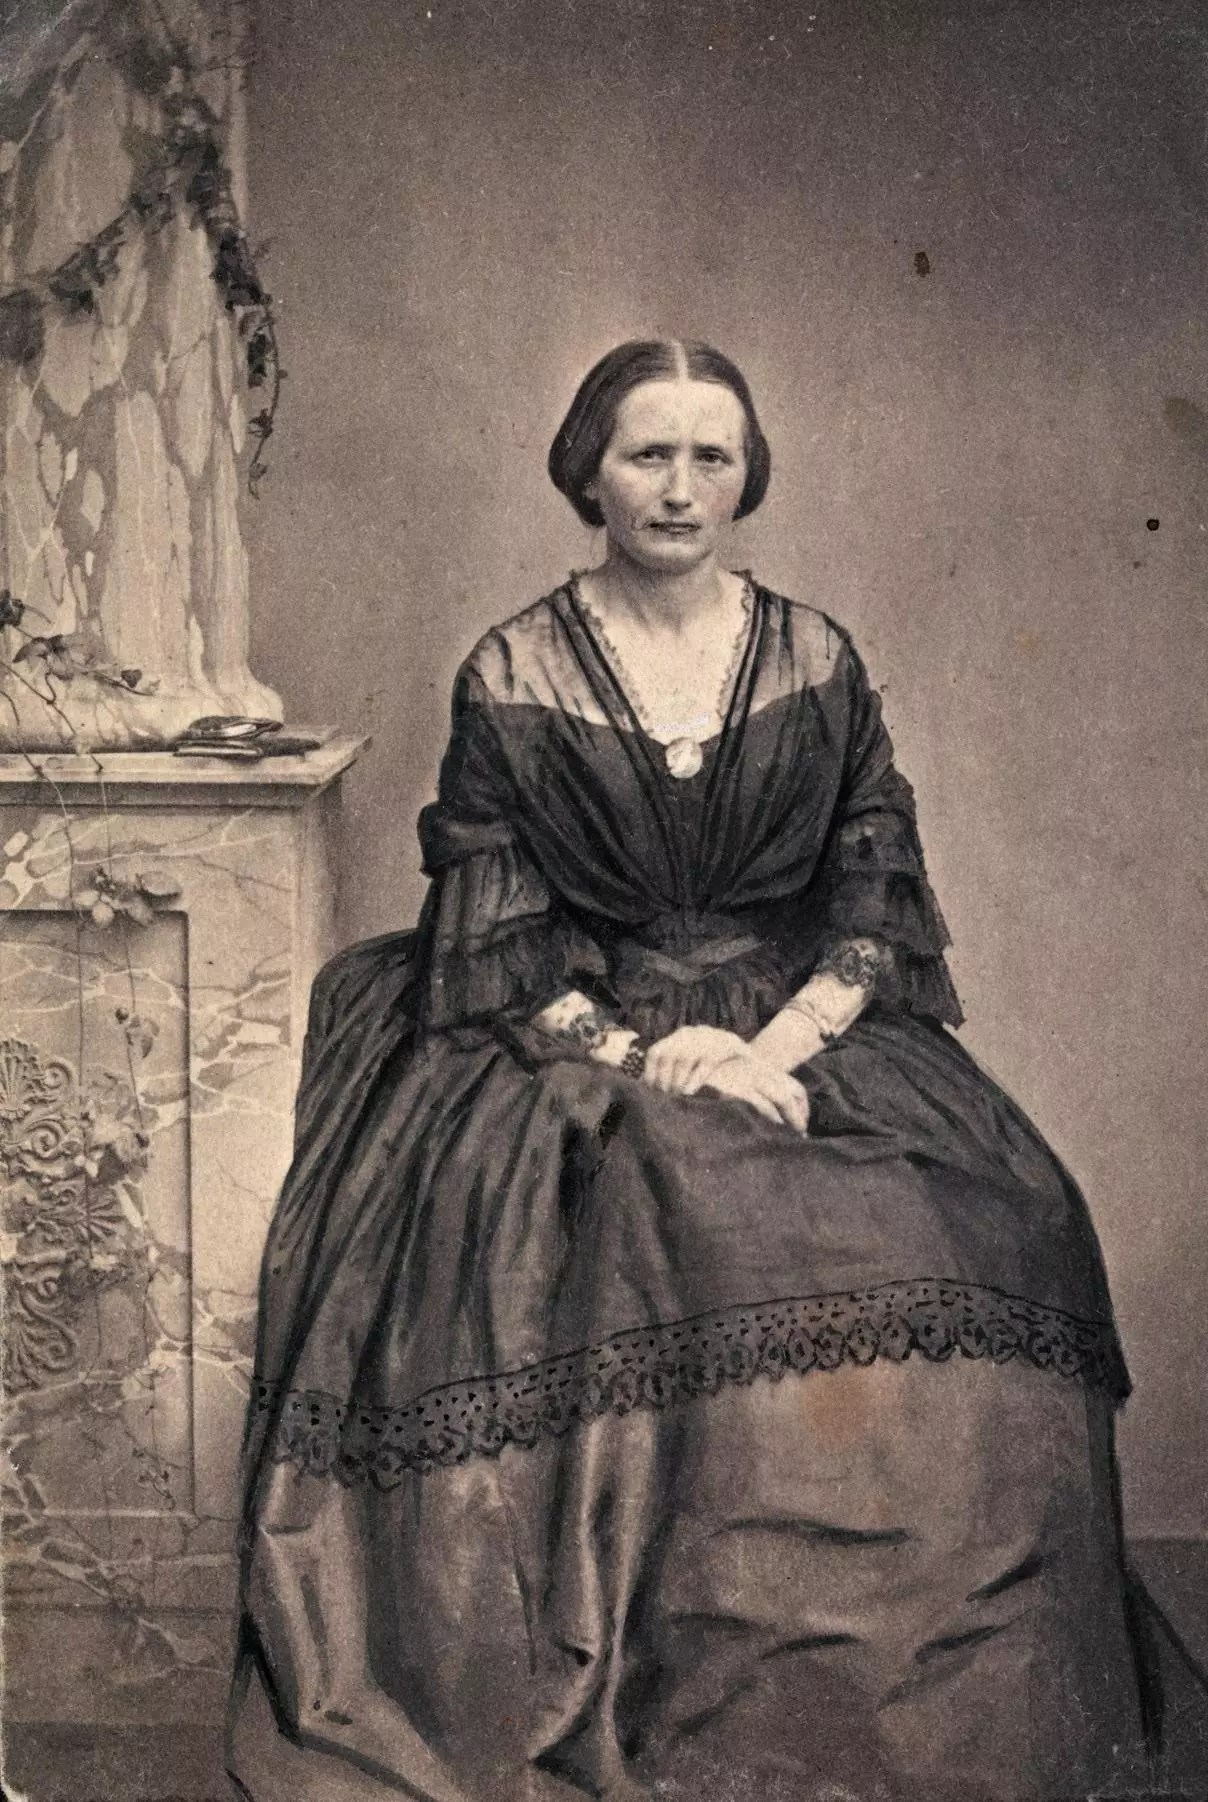 Portrait of Camilla Collett, 1860. [Credit: National Library of Norway]